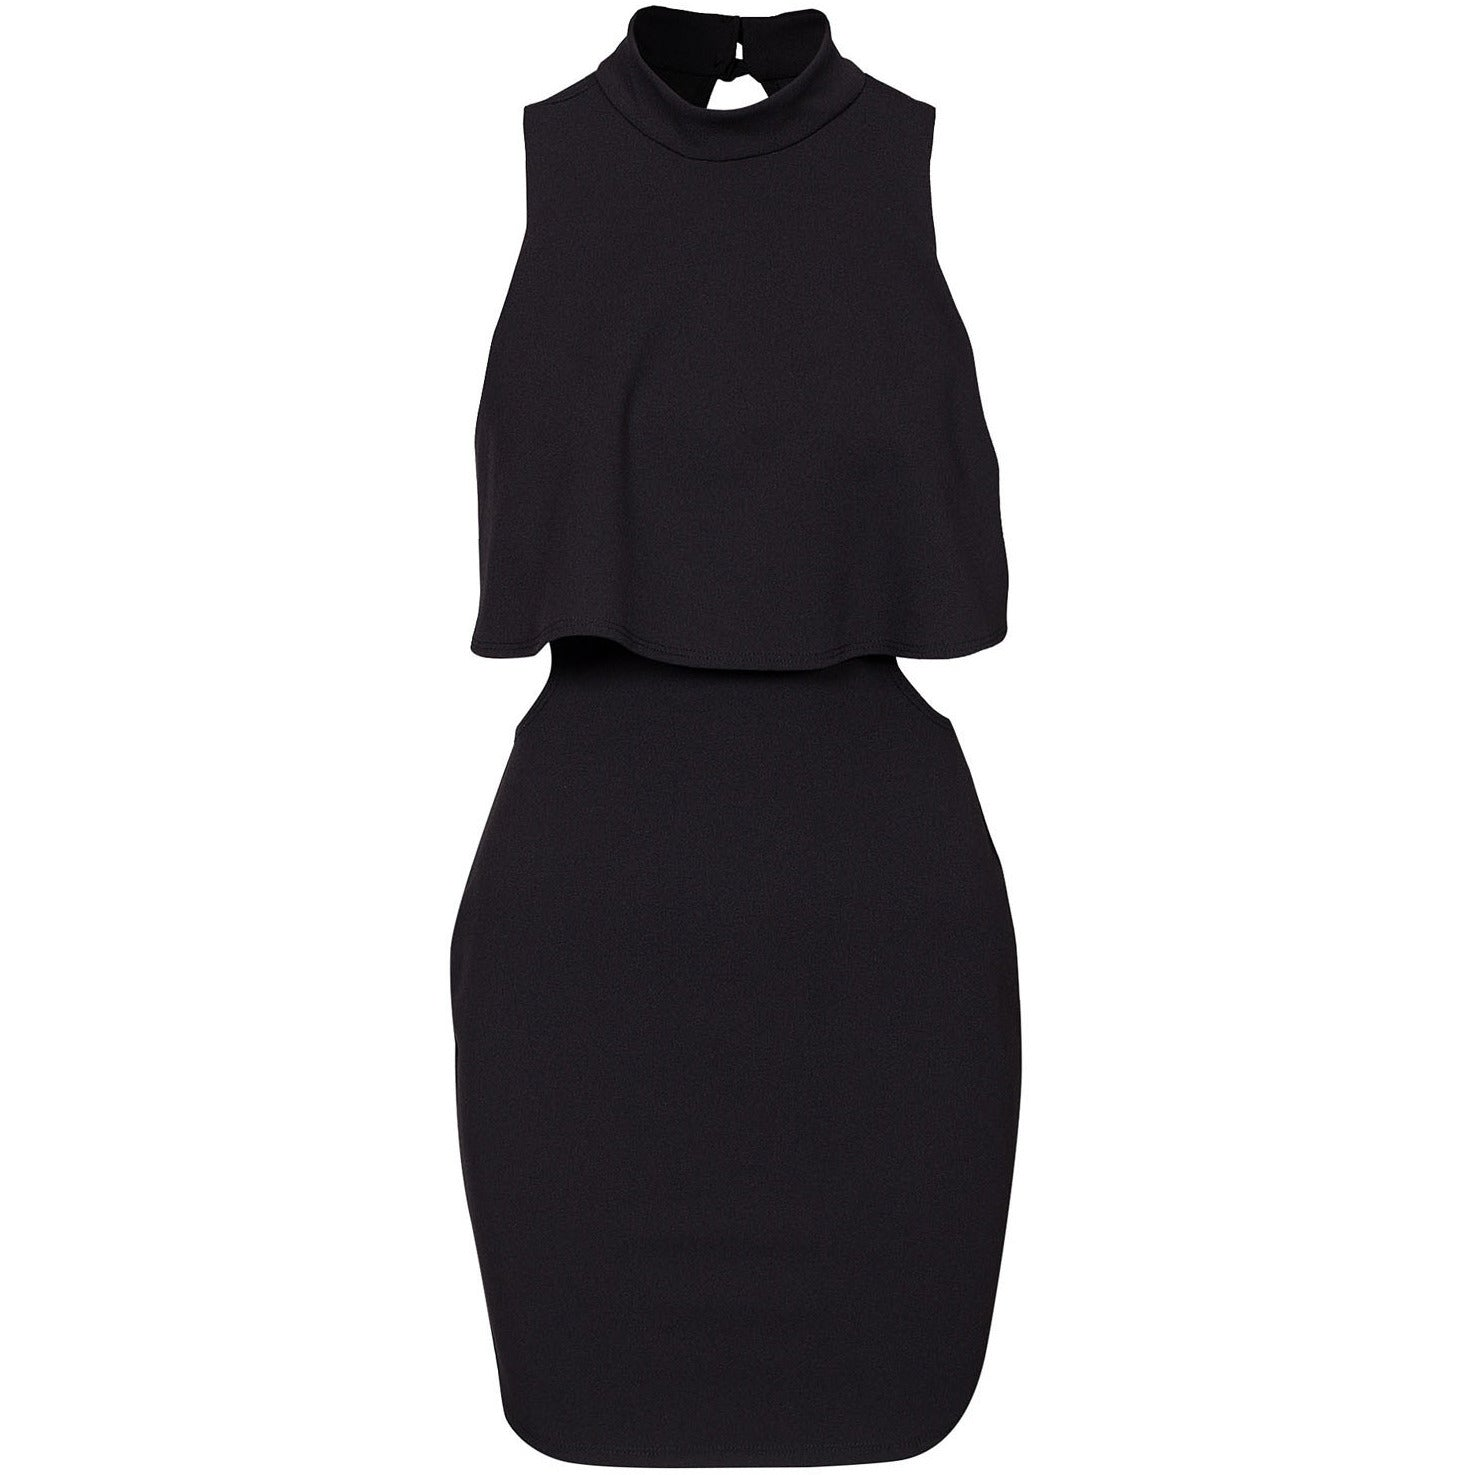 High Neck Little Black Dress Sale LAVELIQ - LAVELIQ - 3